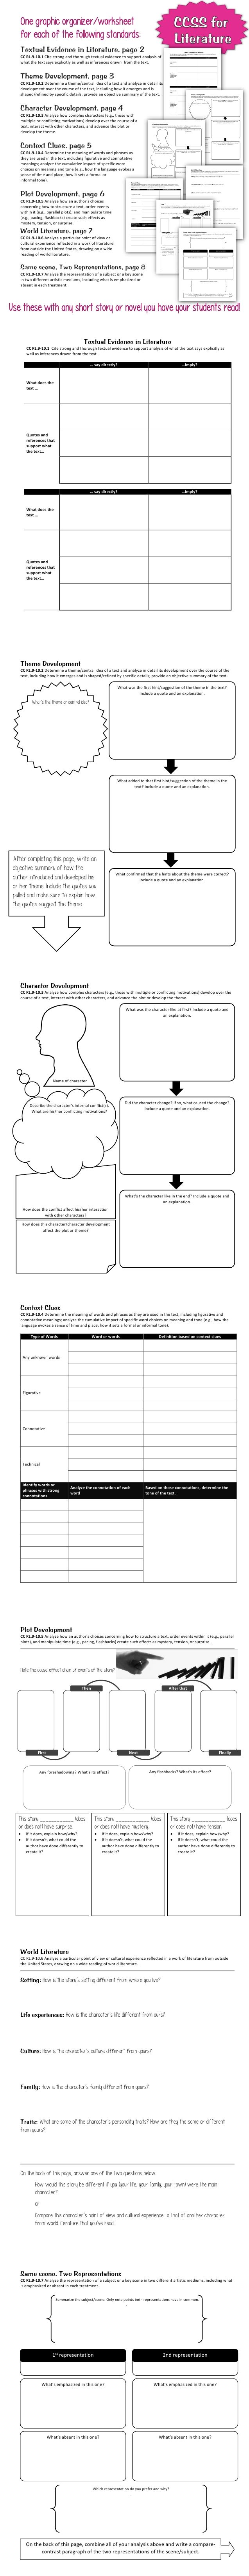 Uncategorized The Most Dangerous Game Worksheets 9 best most dangerous game images on pinterest 7 ccss graphic organizersworksheets to use with any short storynovel